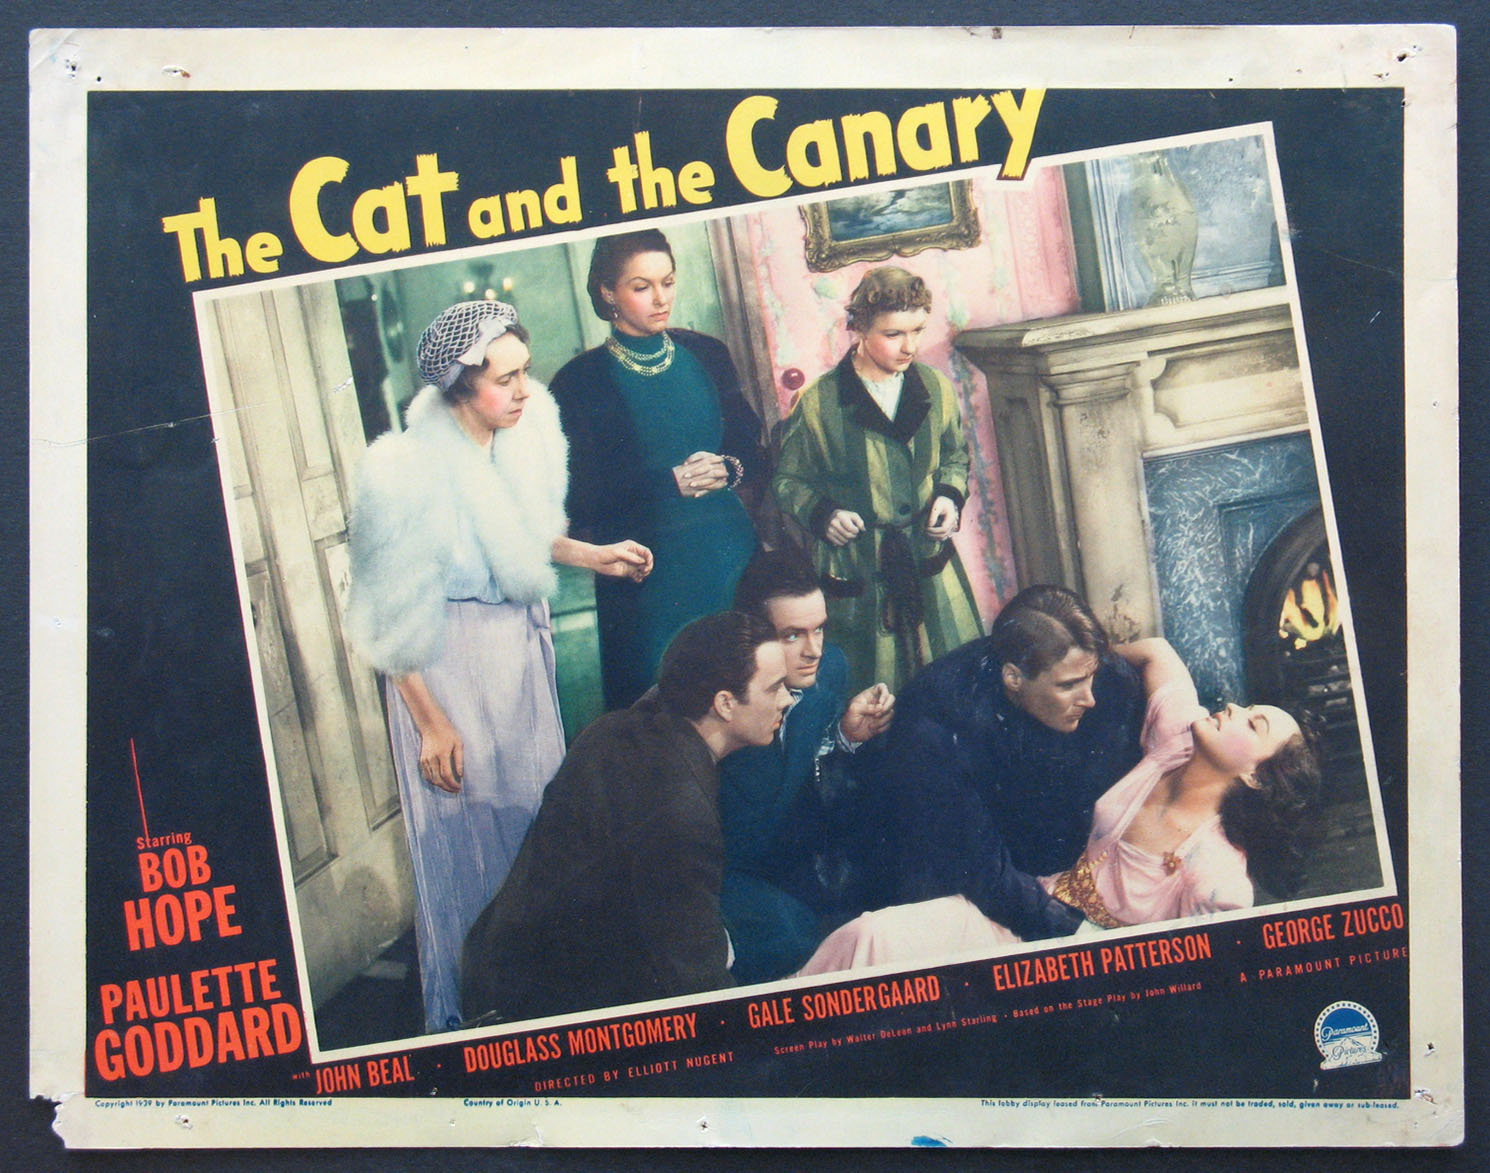 CAT AND THE CANARY, THE @ FilmPosters.com